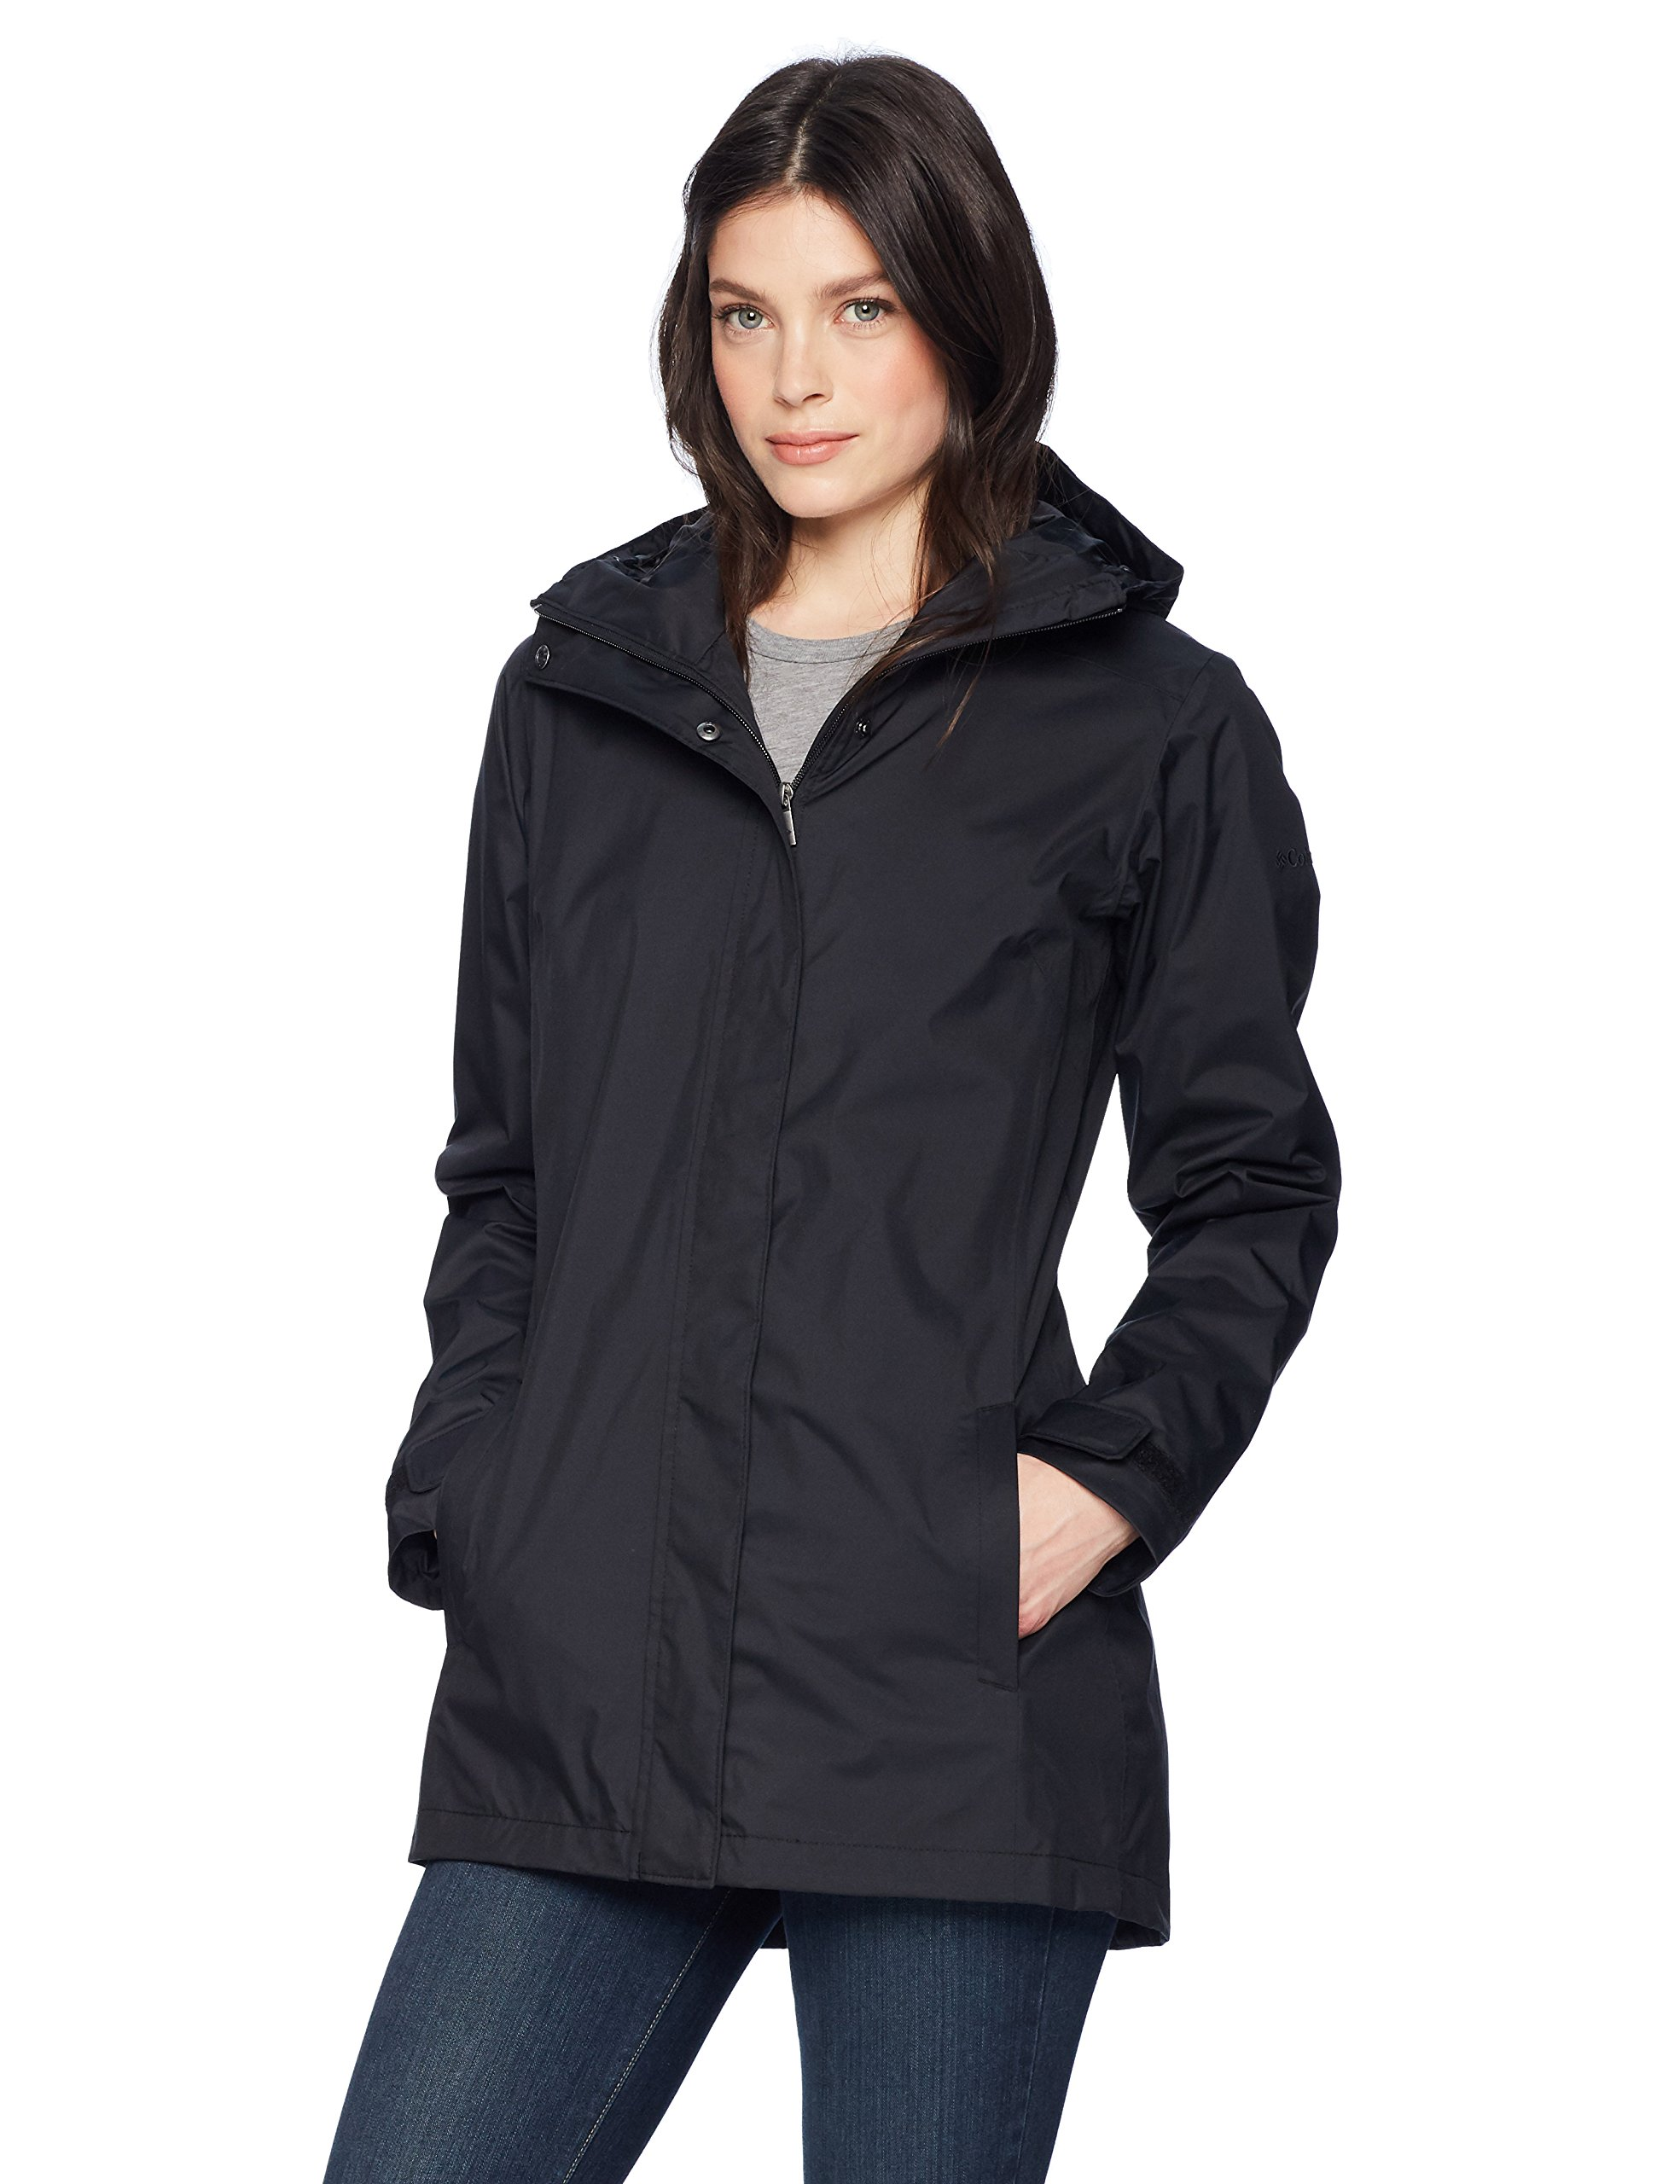 Columbia Women's Splash A Little Ii Jacket, Black, Small